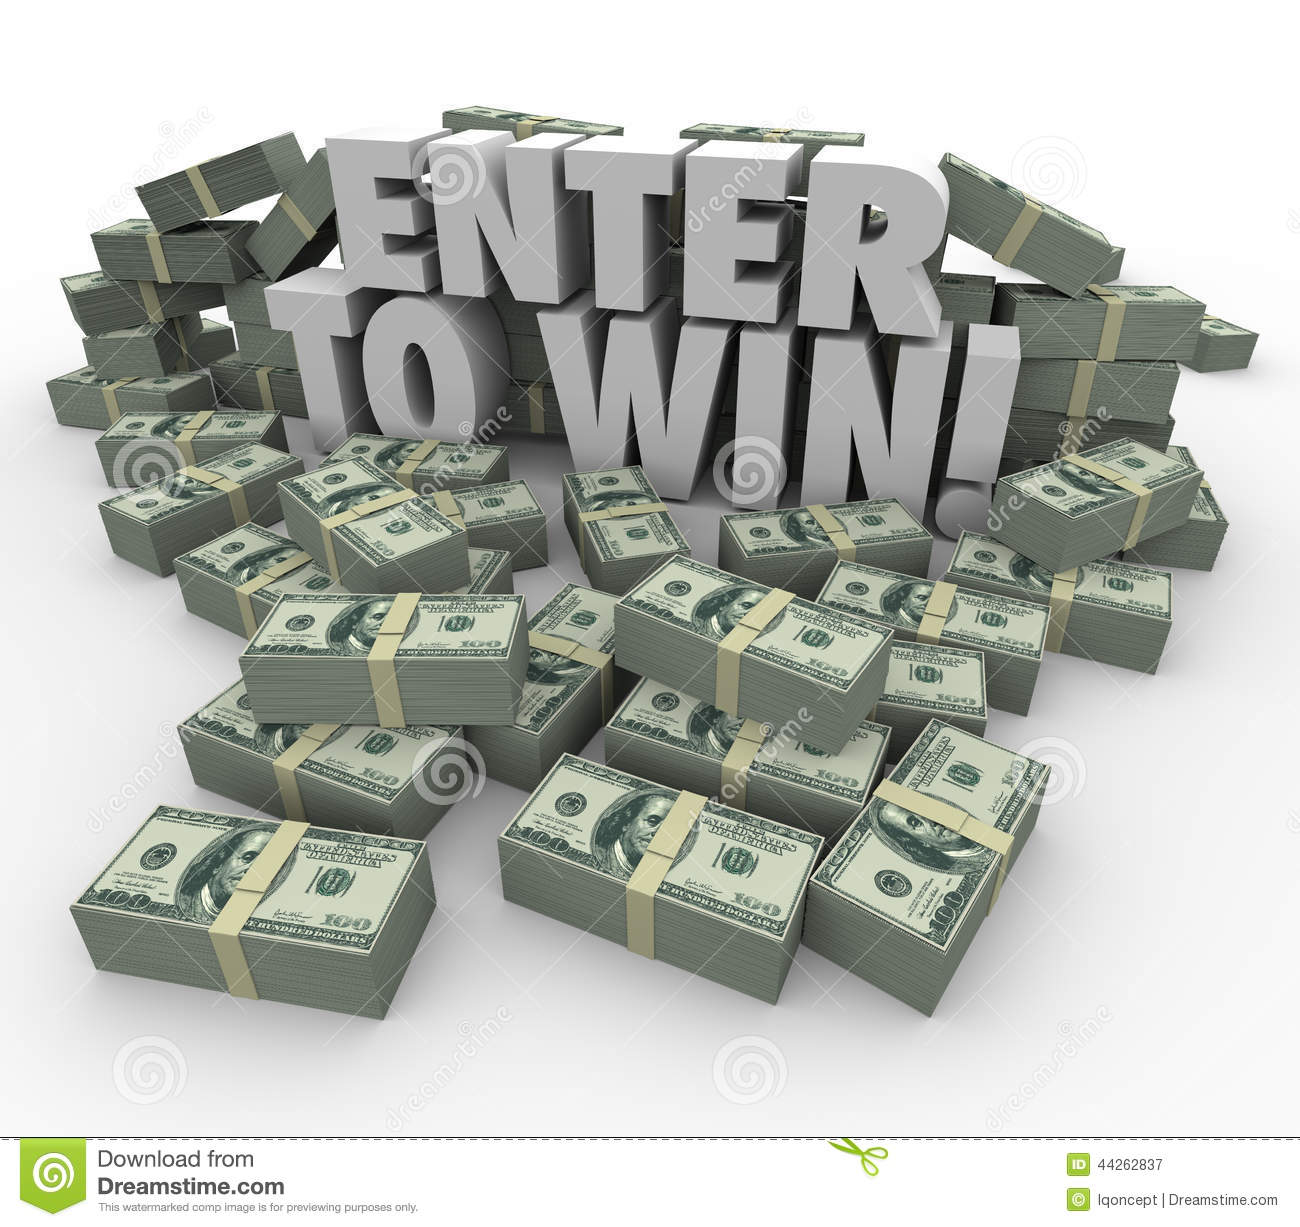 raffle stock photos images pictures images enter to win 3d words cash money stacks contest raffle lottery royalty stock photography